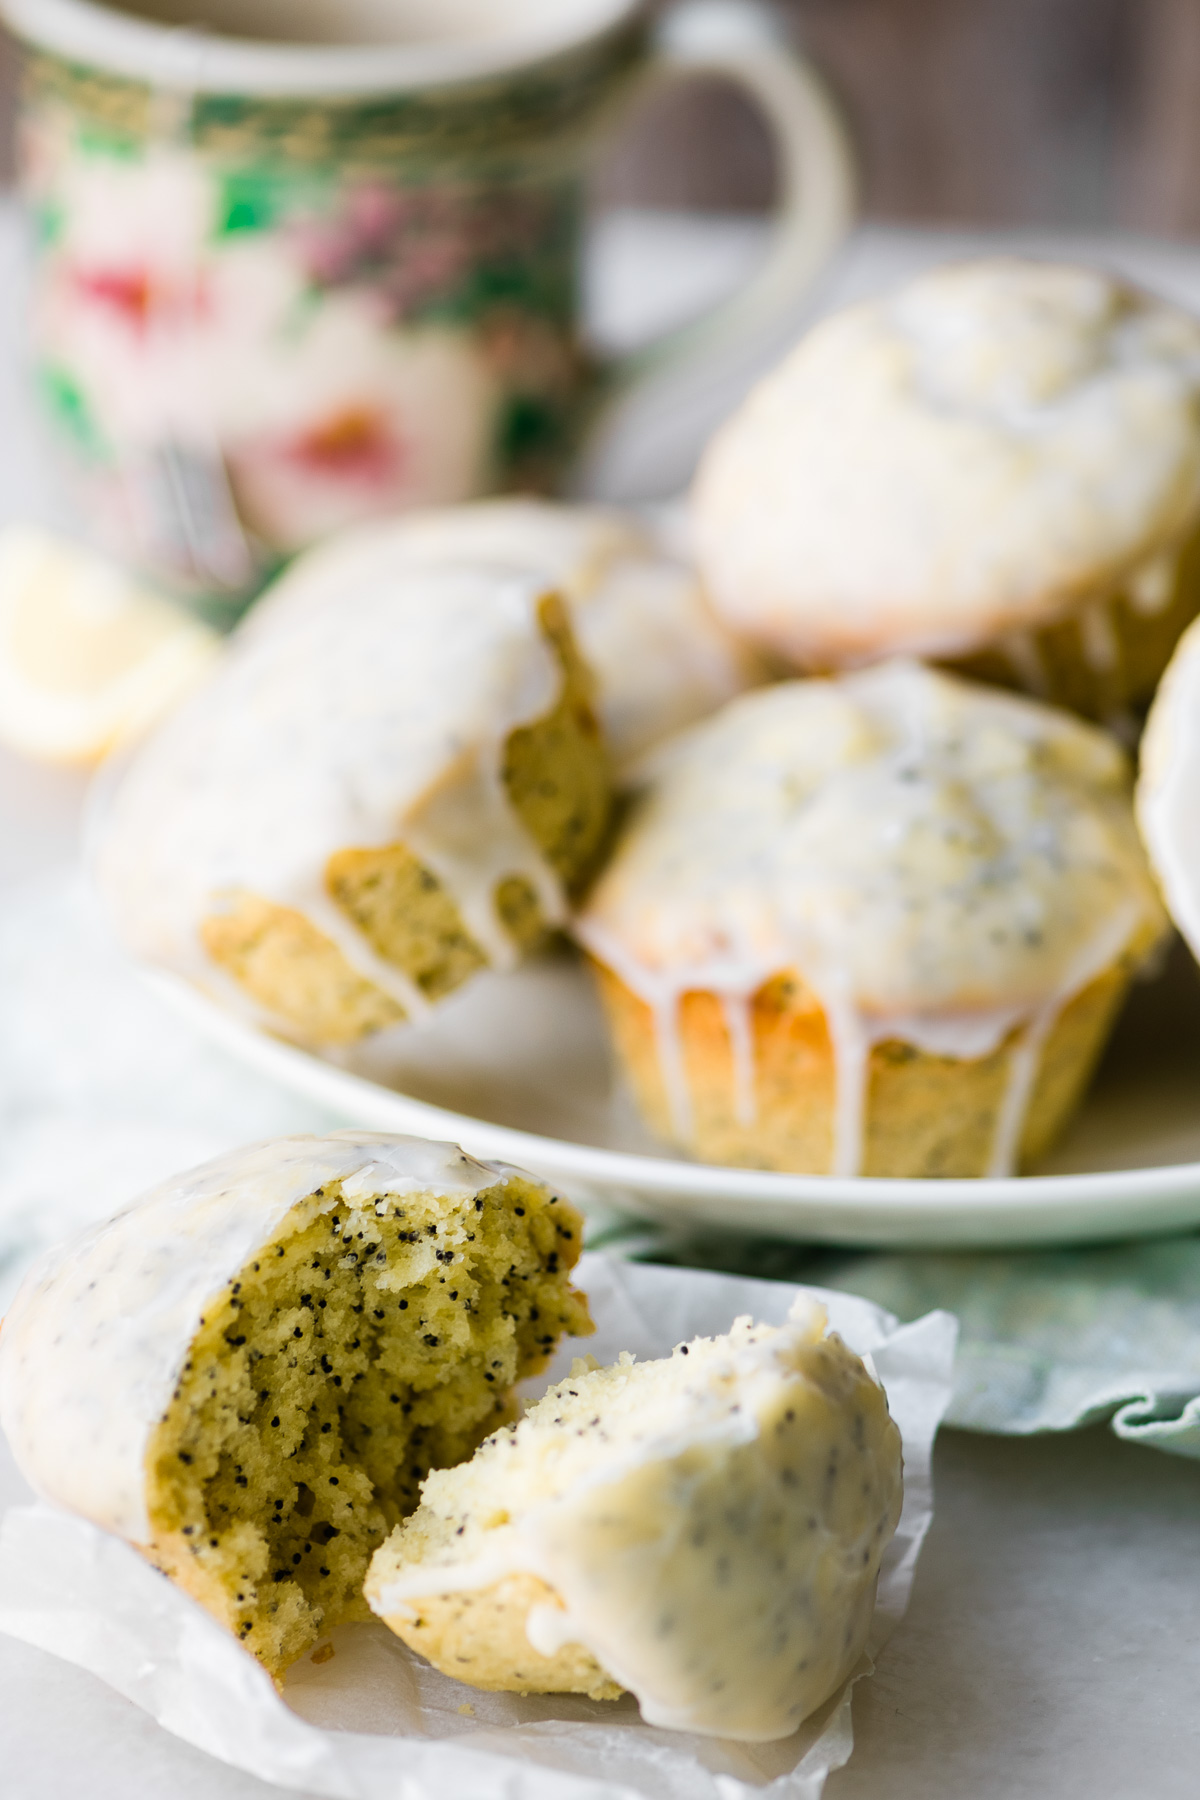 lemon poppy seed muffins on a plate with cup of tea